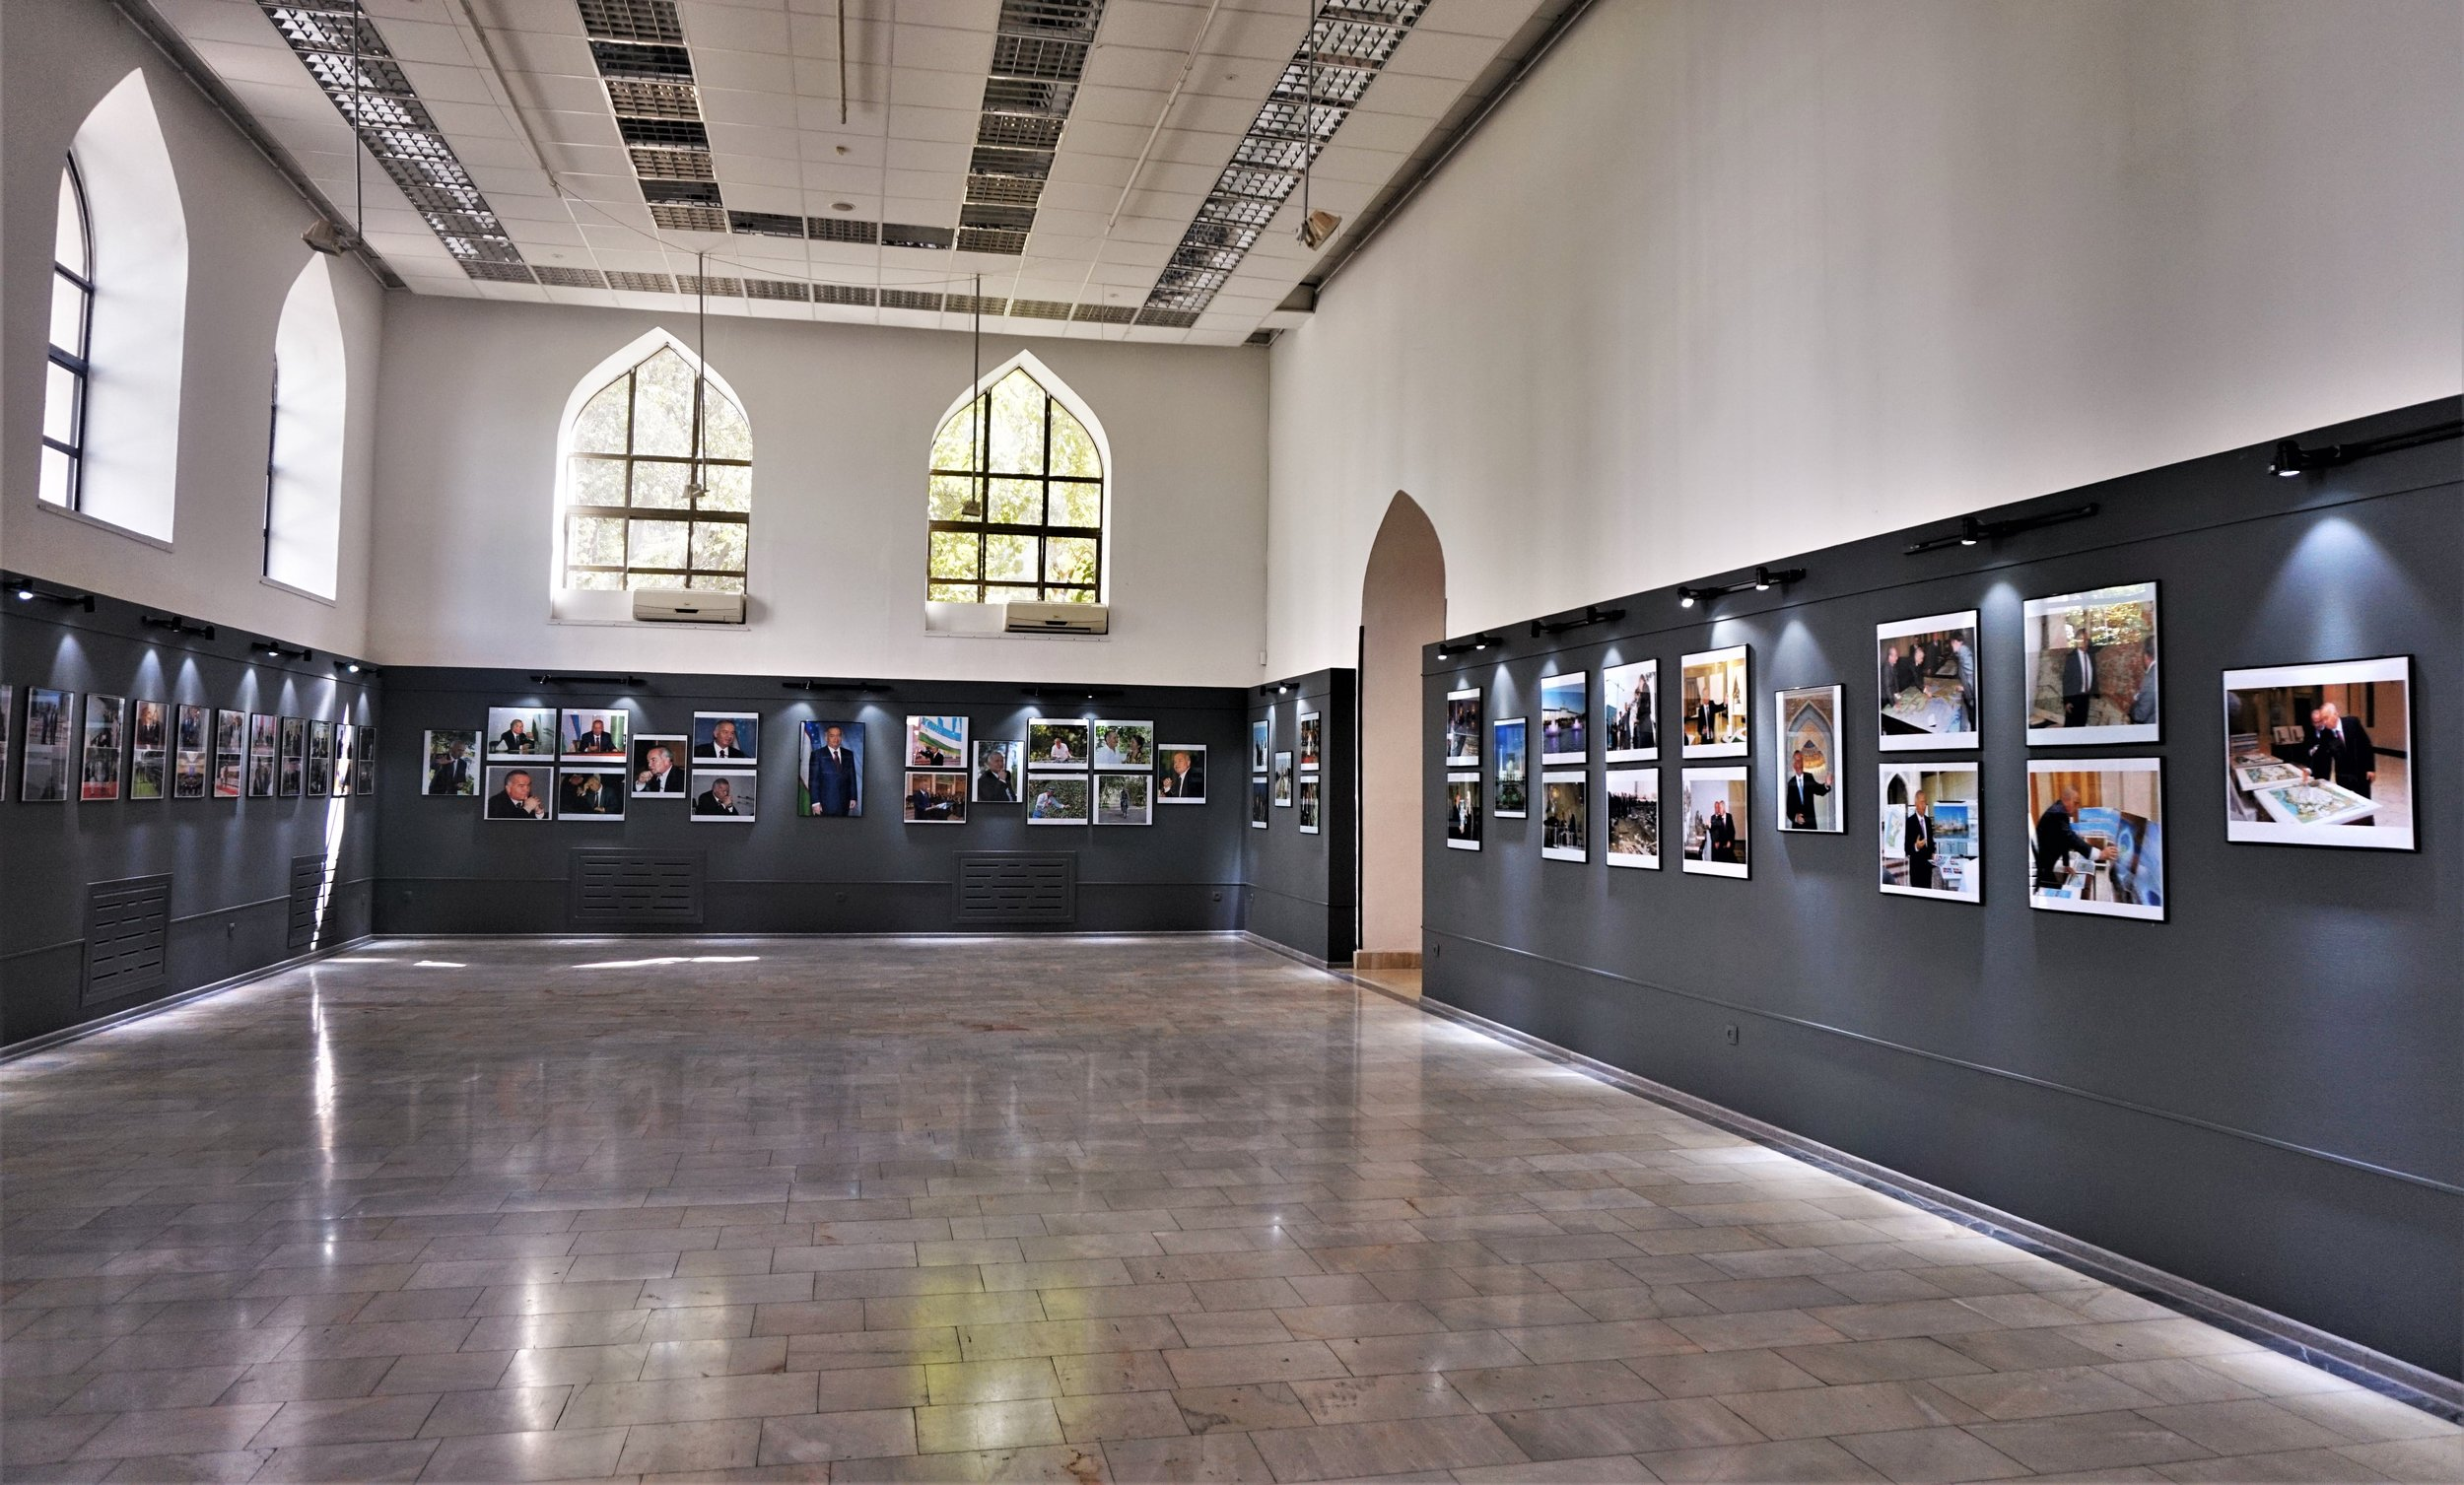 Have a look what exhibition is on during your stay in Tashkent, because seeing the photo exhibition is one of the best things to do in Tashkent, Uzbekistan.